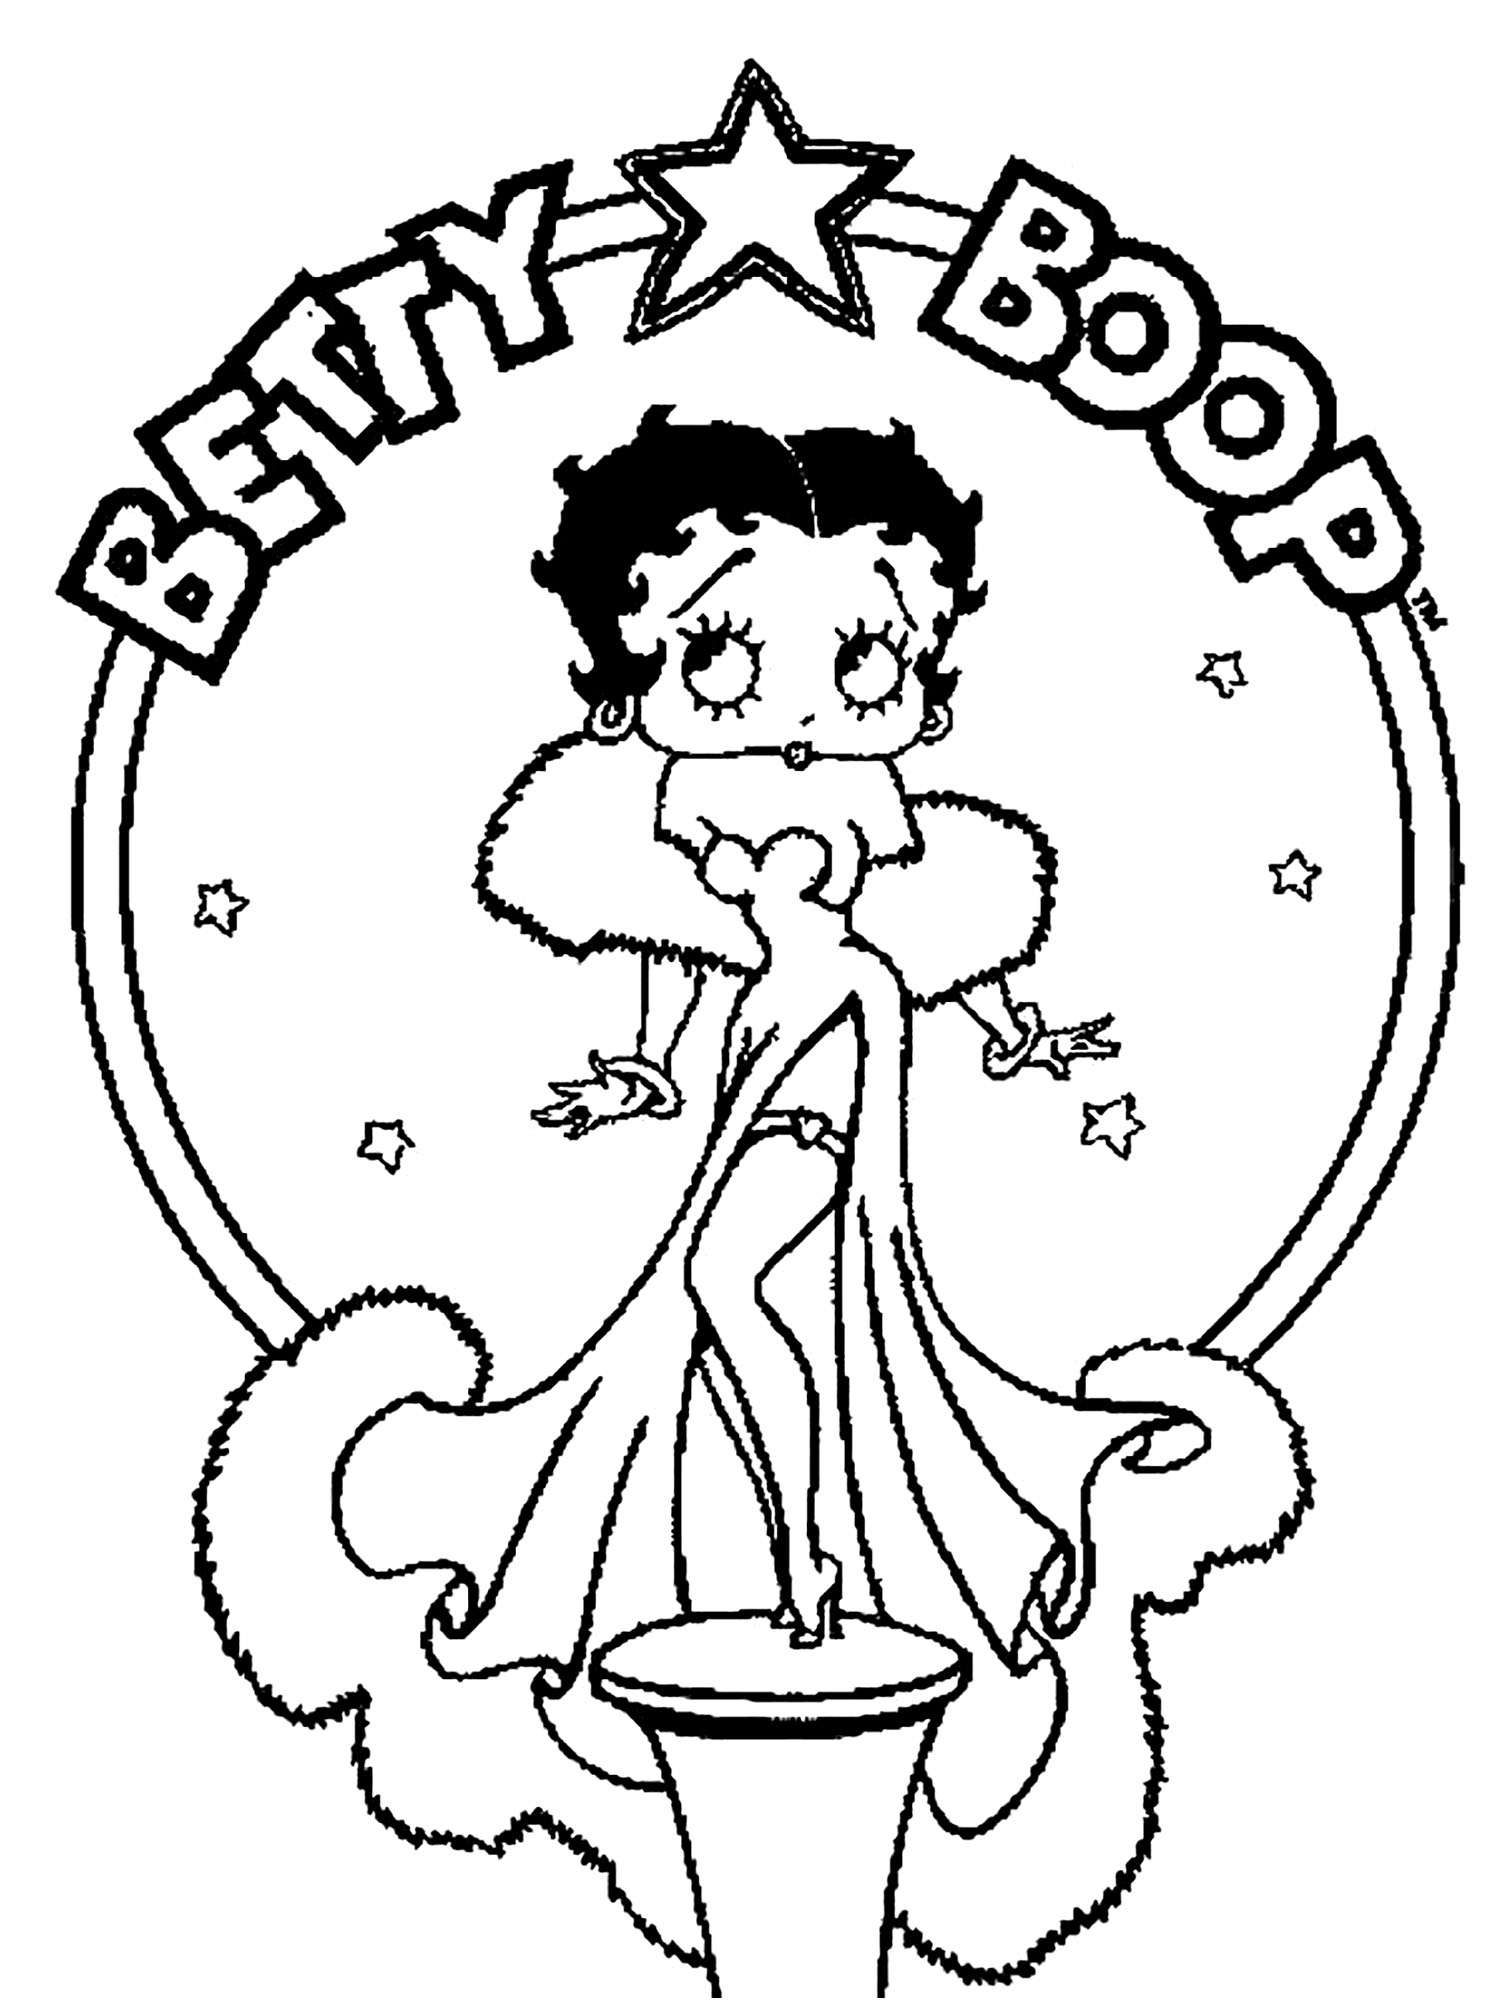 Simple Betty Boop coloring page to download for free